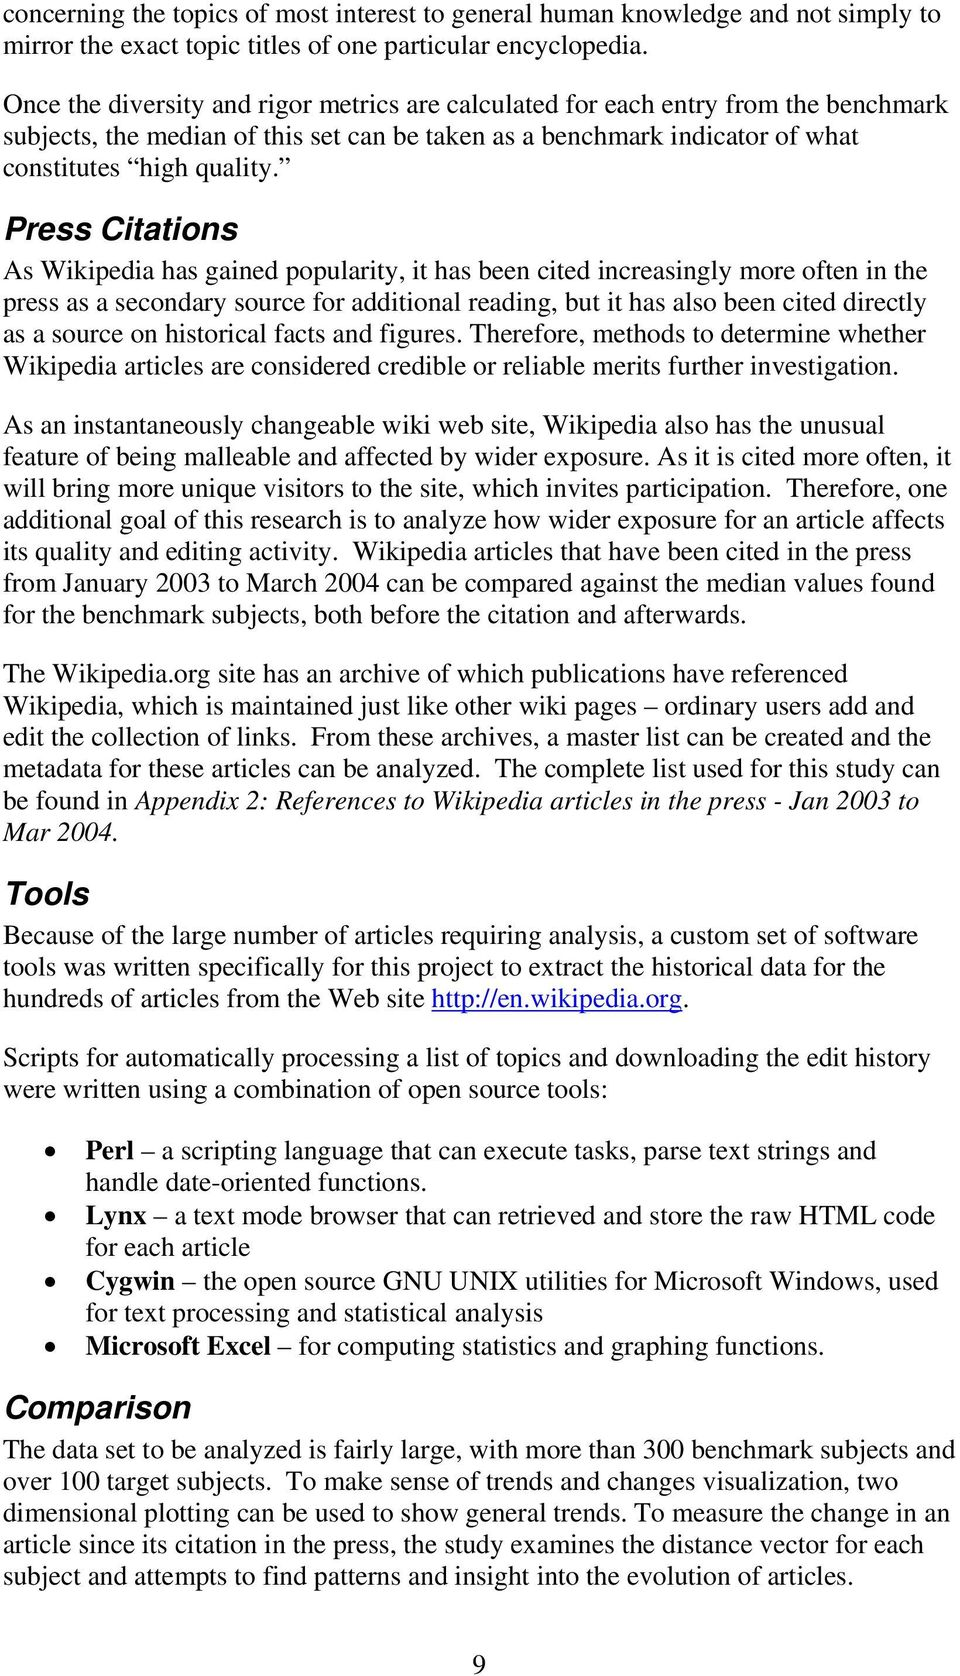 Press Citations As Wikipedia has gained popularity, it has been cited increasingly more often in the press as a secondary source for additional reading, but it has also been cited directly as a